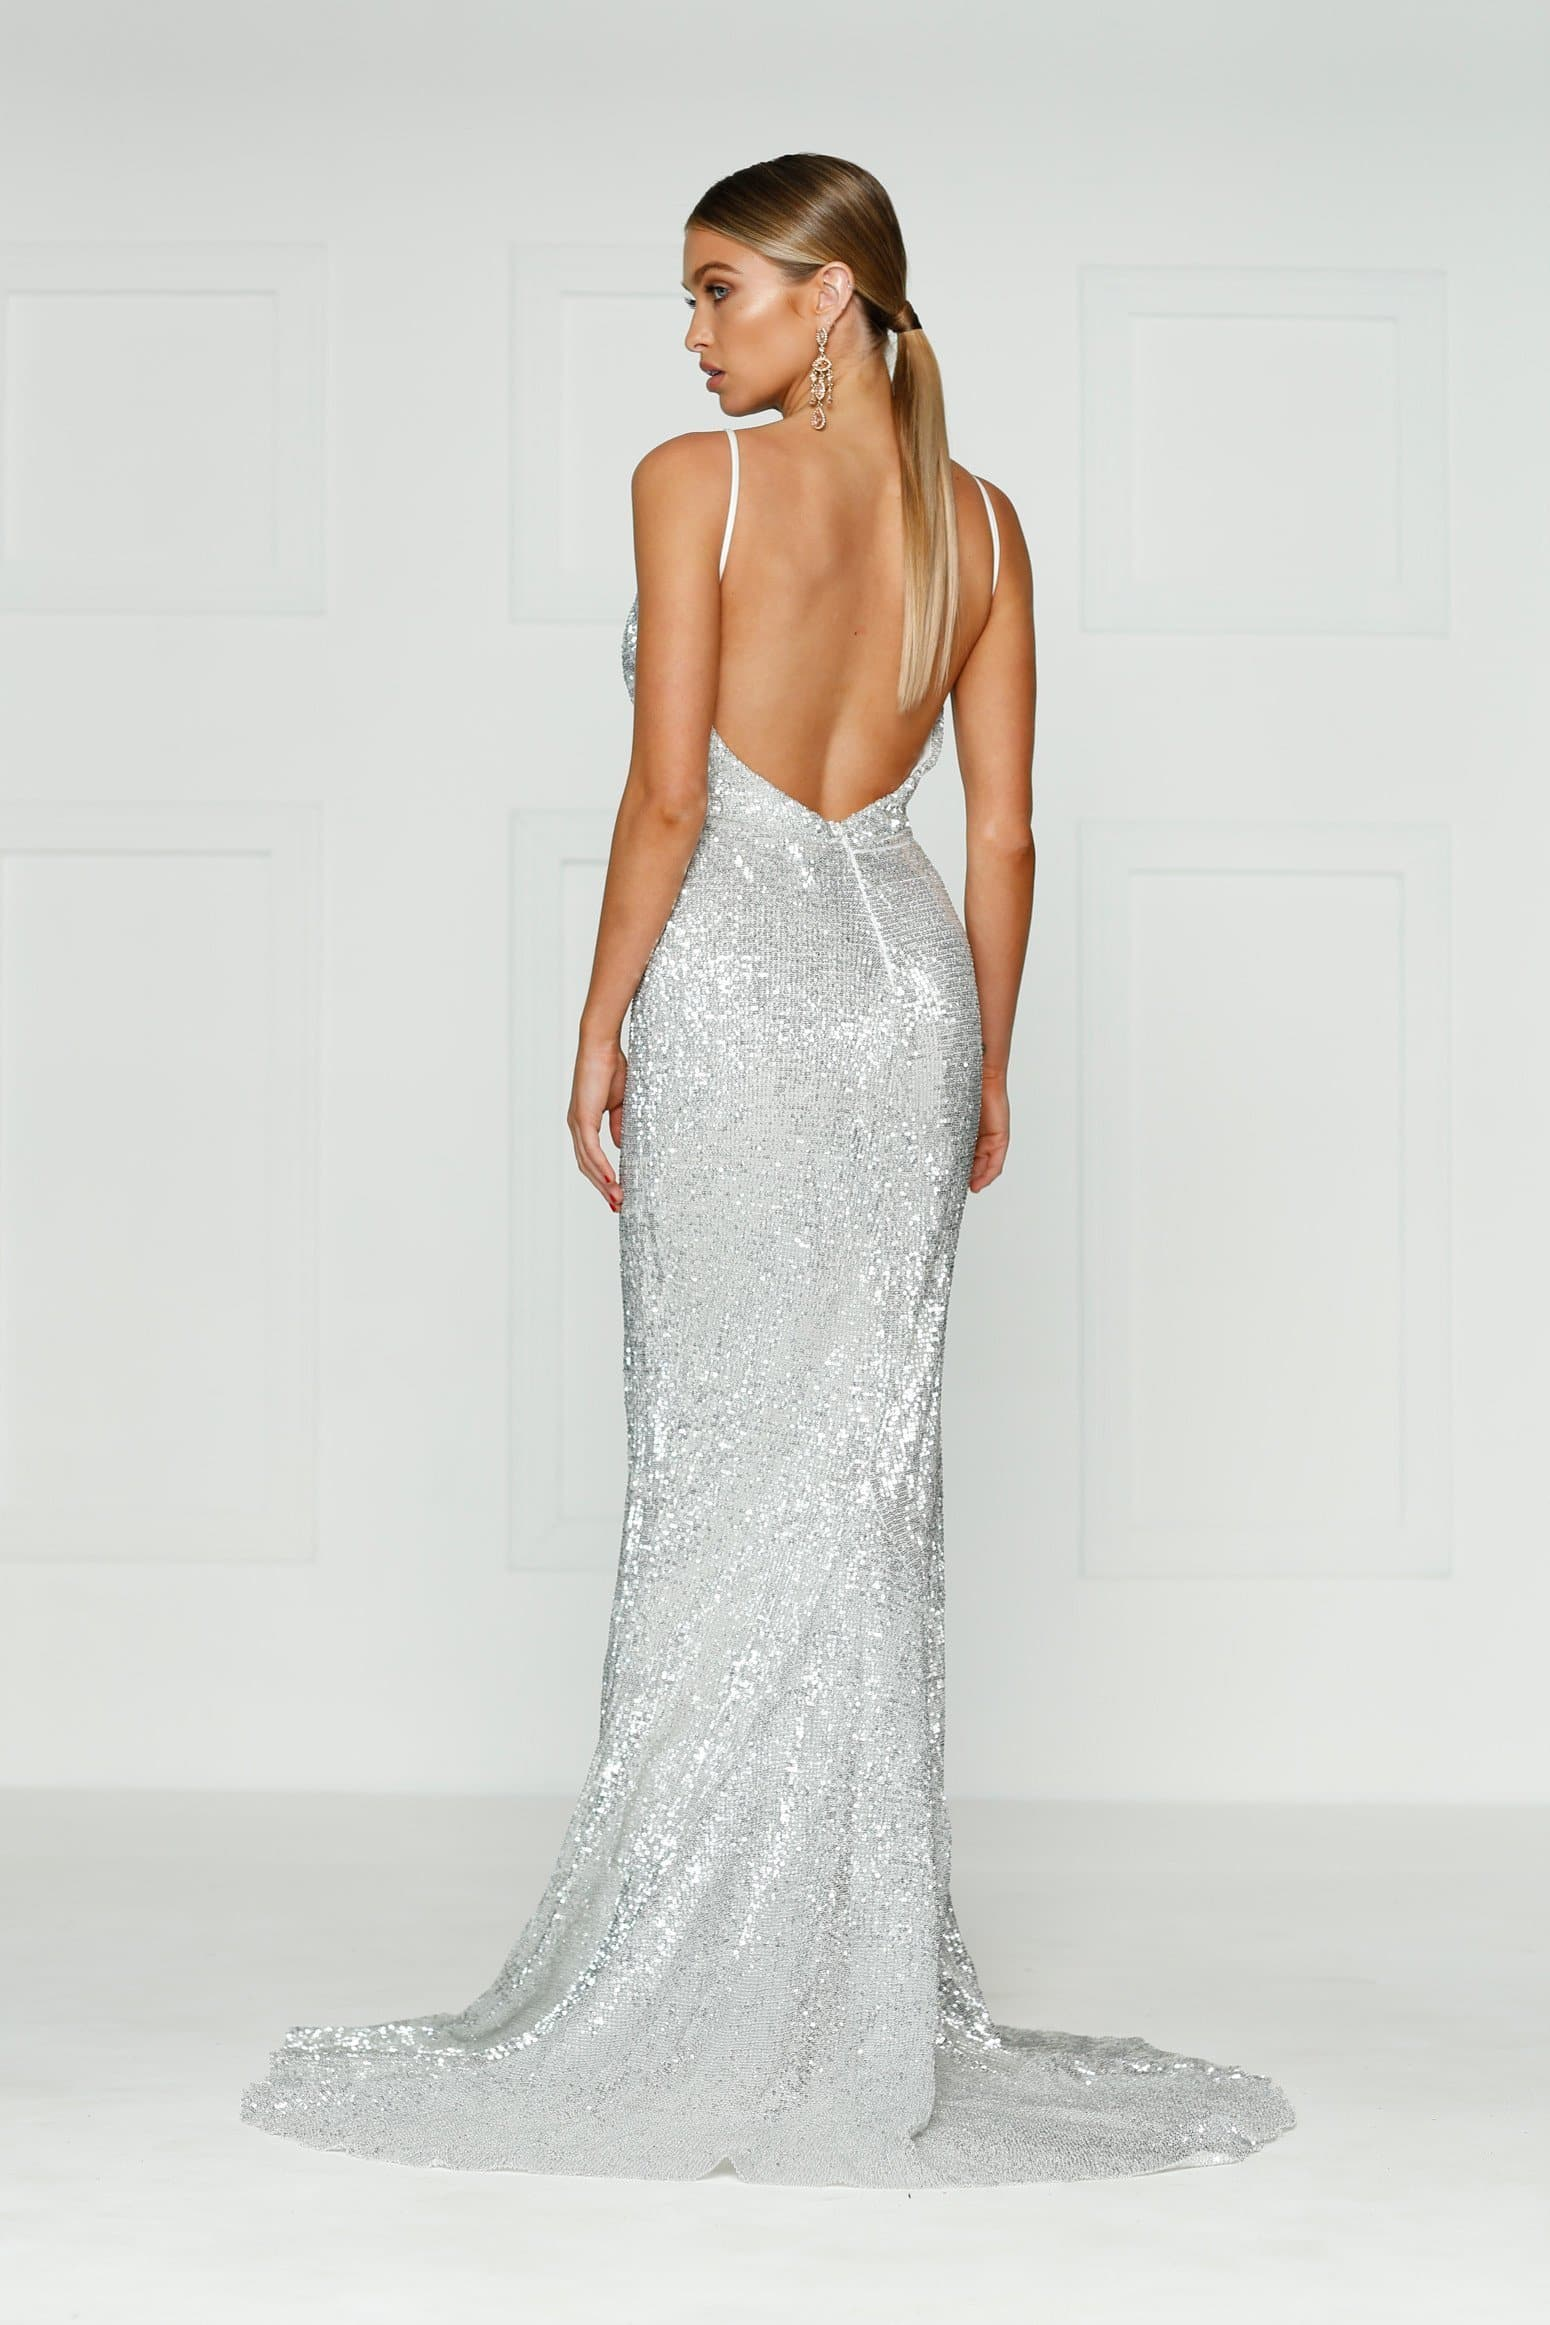 Cynthia Formal Dress - Silver Sparkling V Neck Low Back Maxi Prom Gown